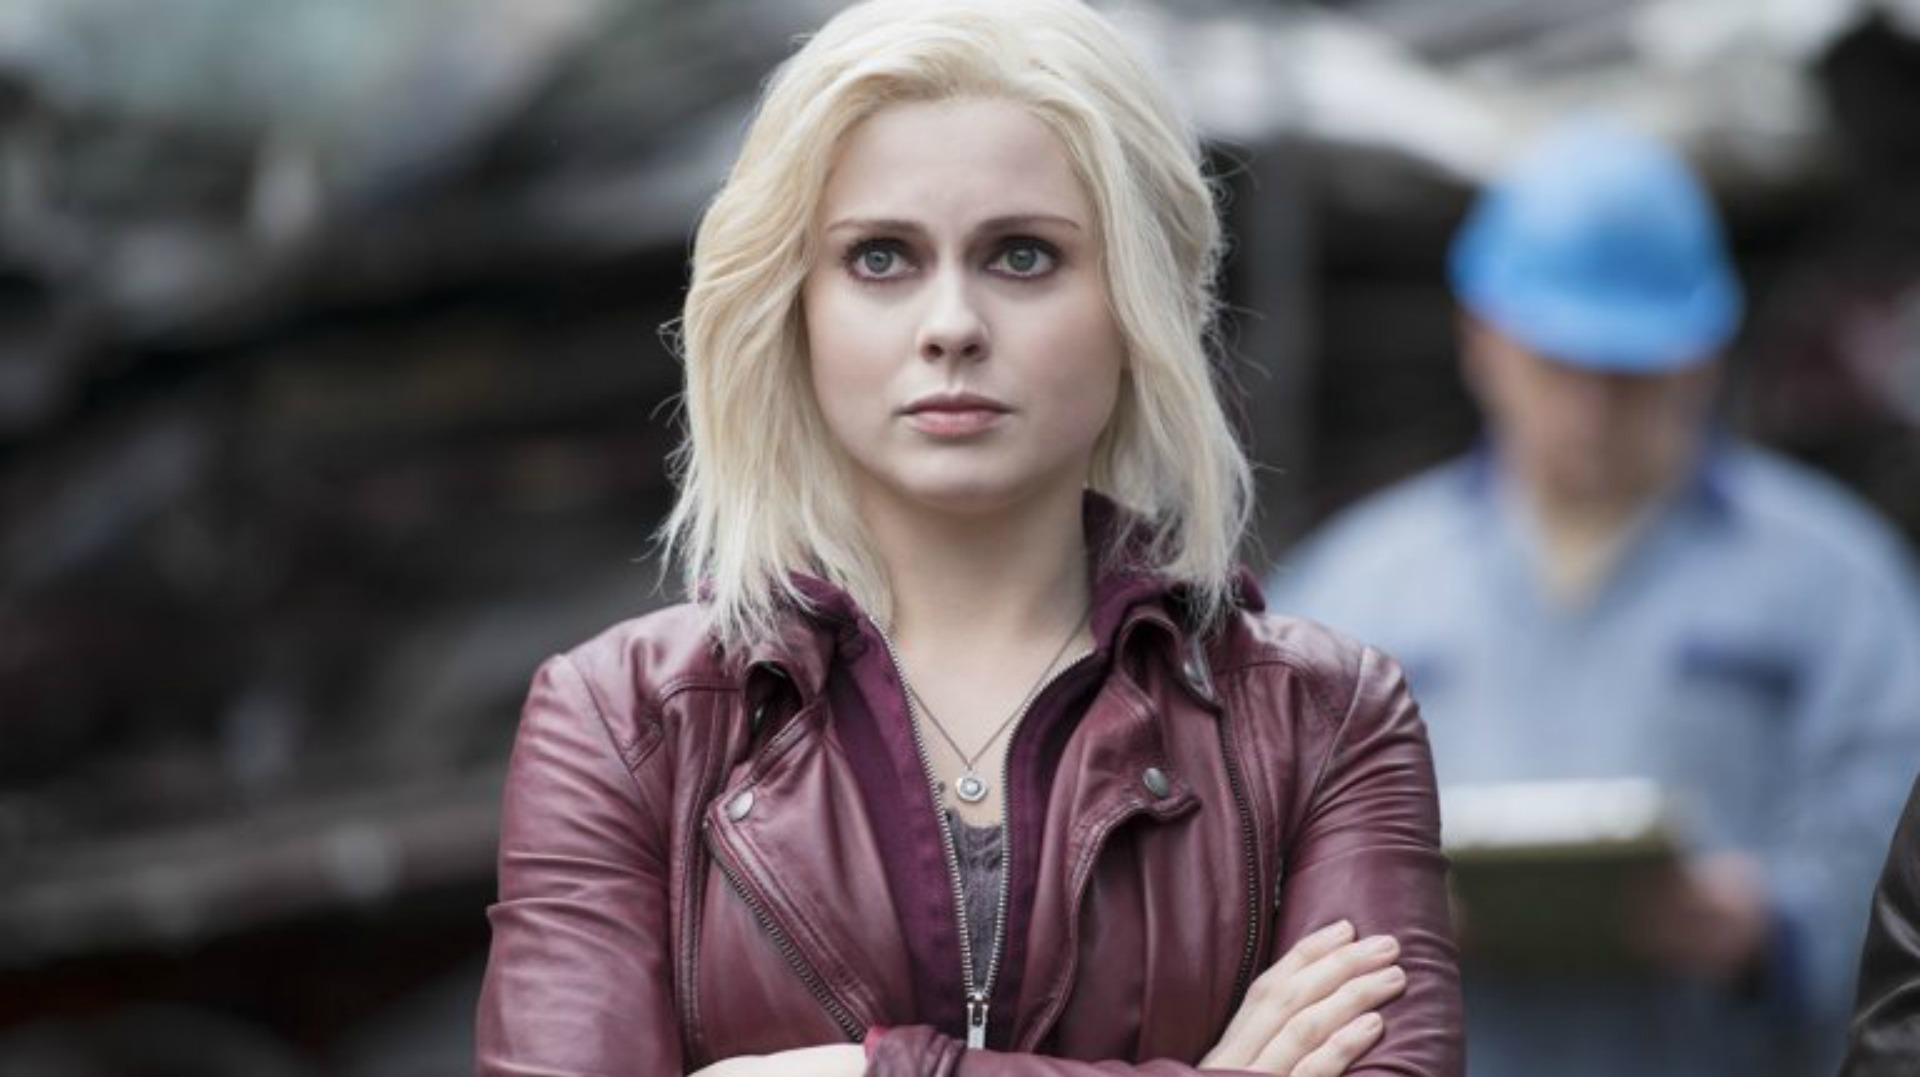 Aly Michalka Two And A Half Men Gif 10 izombie season 2 spoilers that will feed your brain